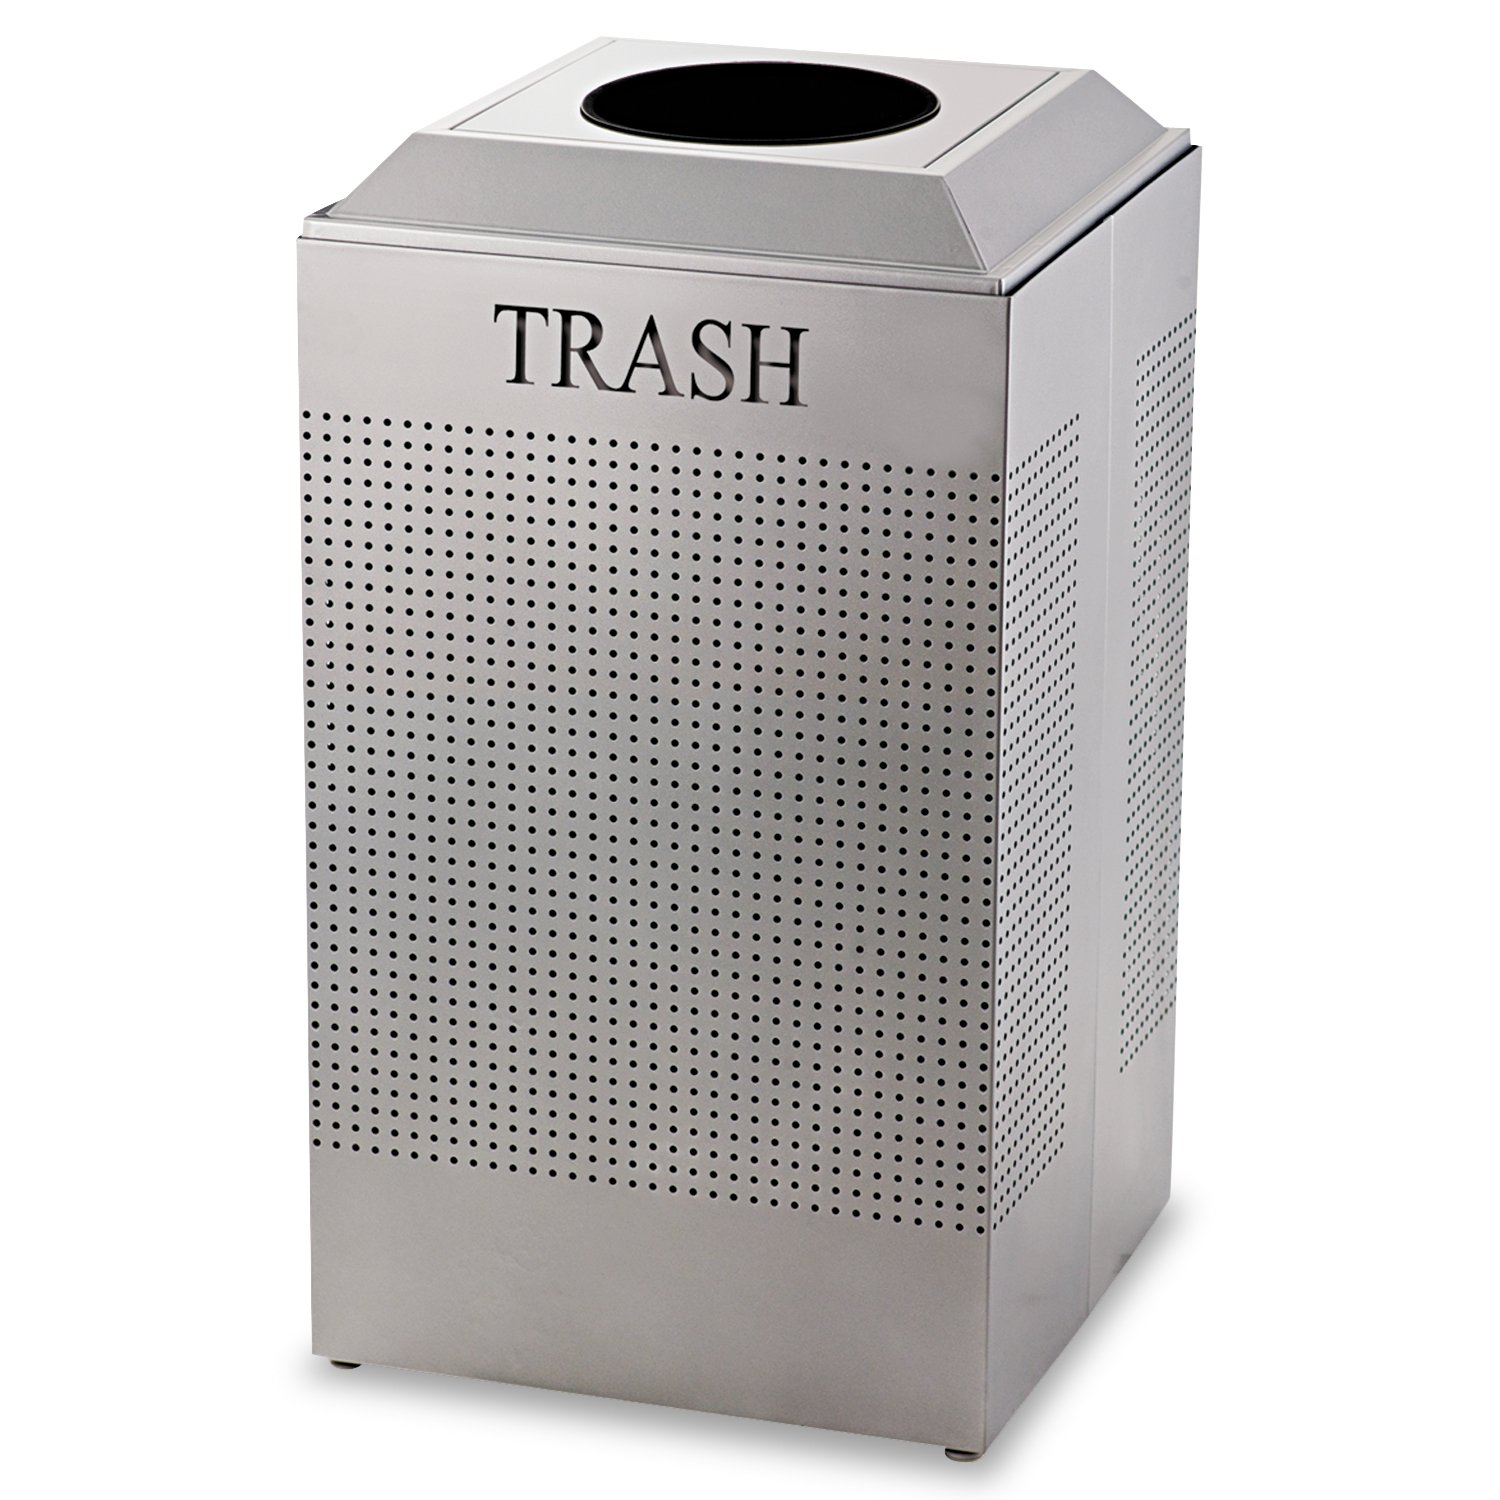 Rubbermaid Commercial Silhouette Trash Can, 29 Gallon, Steel, FGDCR24TSM